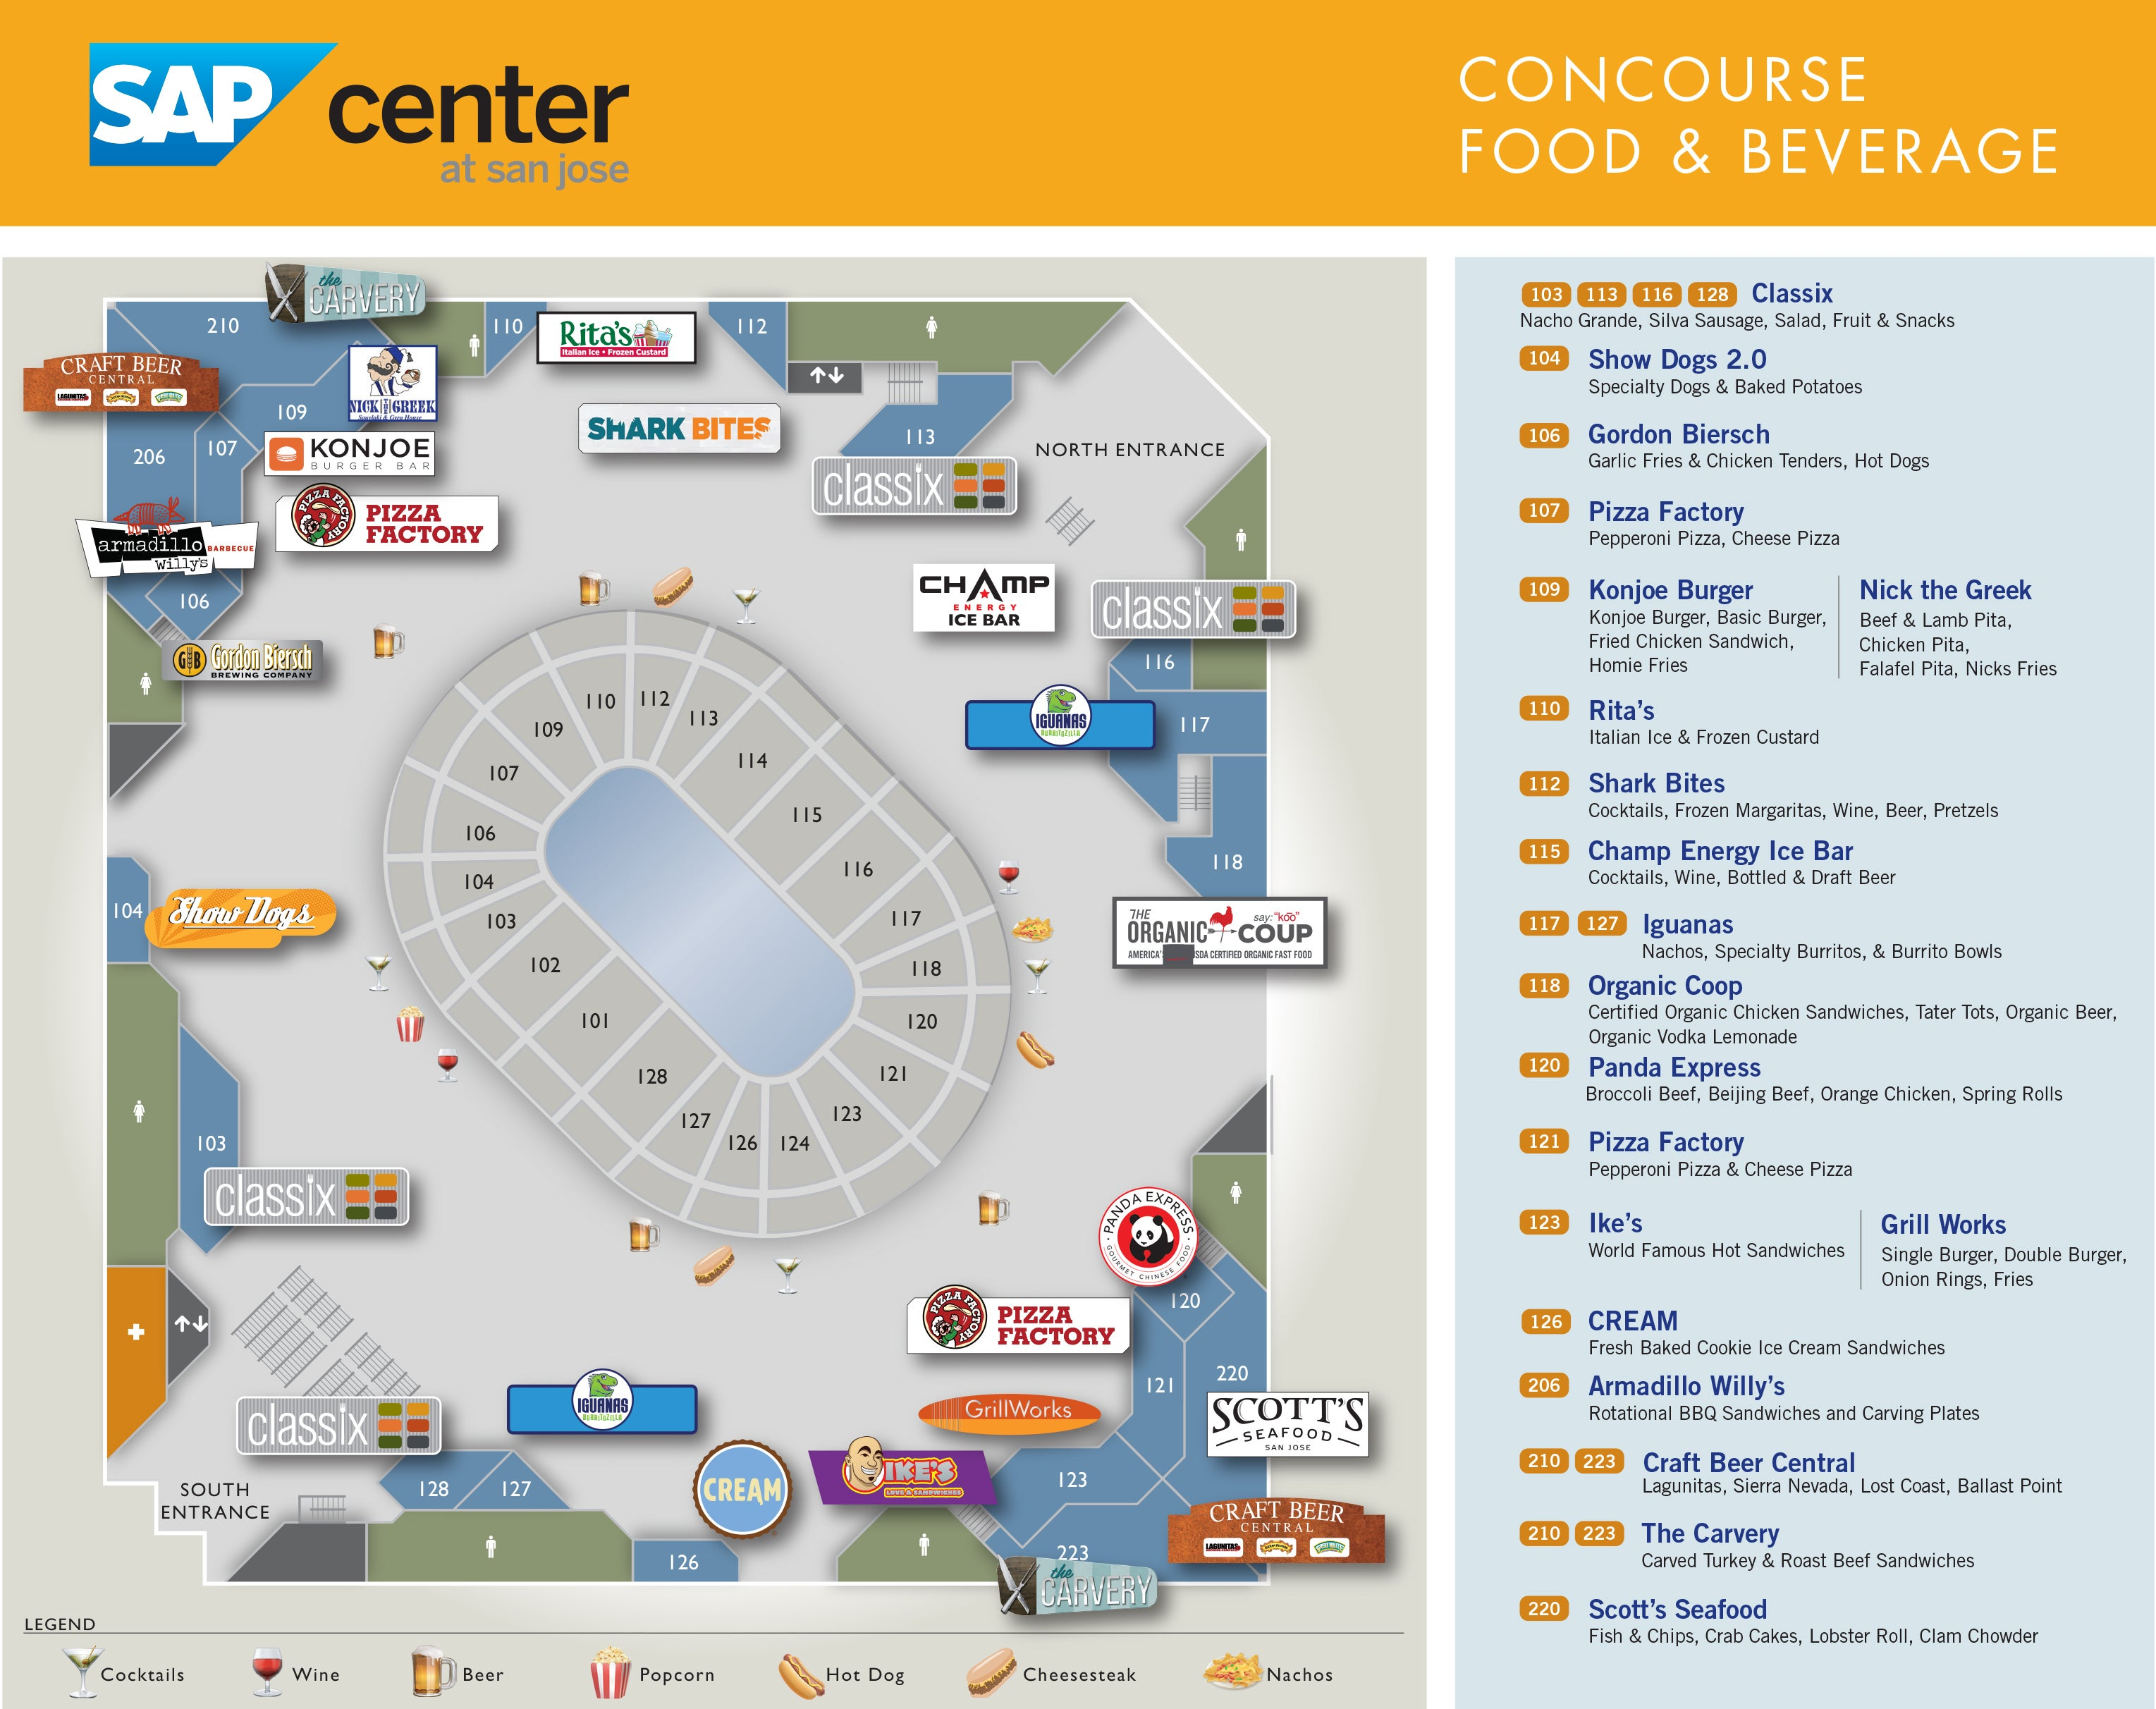 SAP Concourse Map_2018_Food_Beverage_maps-2.jpg